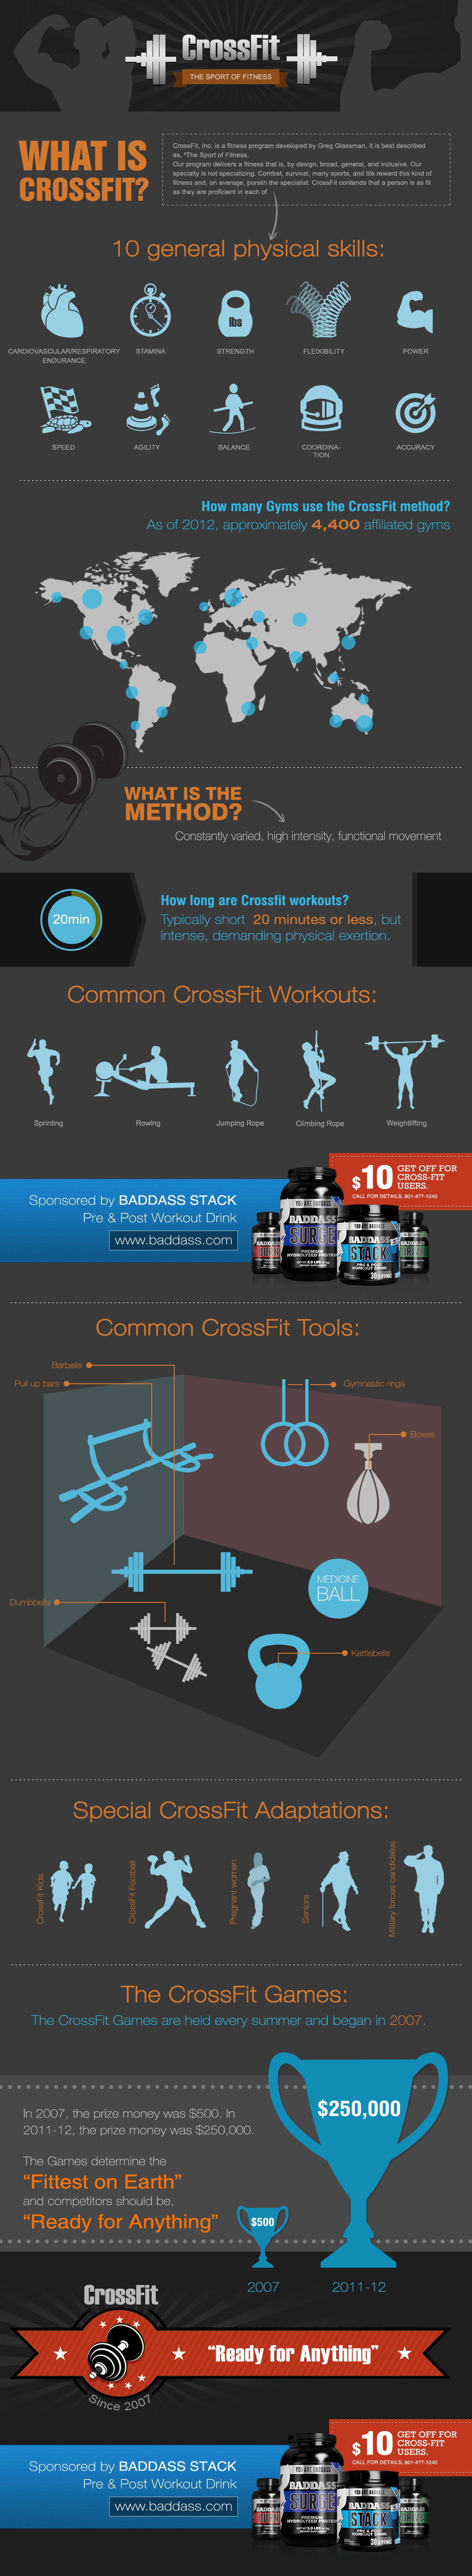 Crossfit Infographic